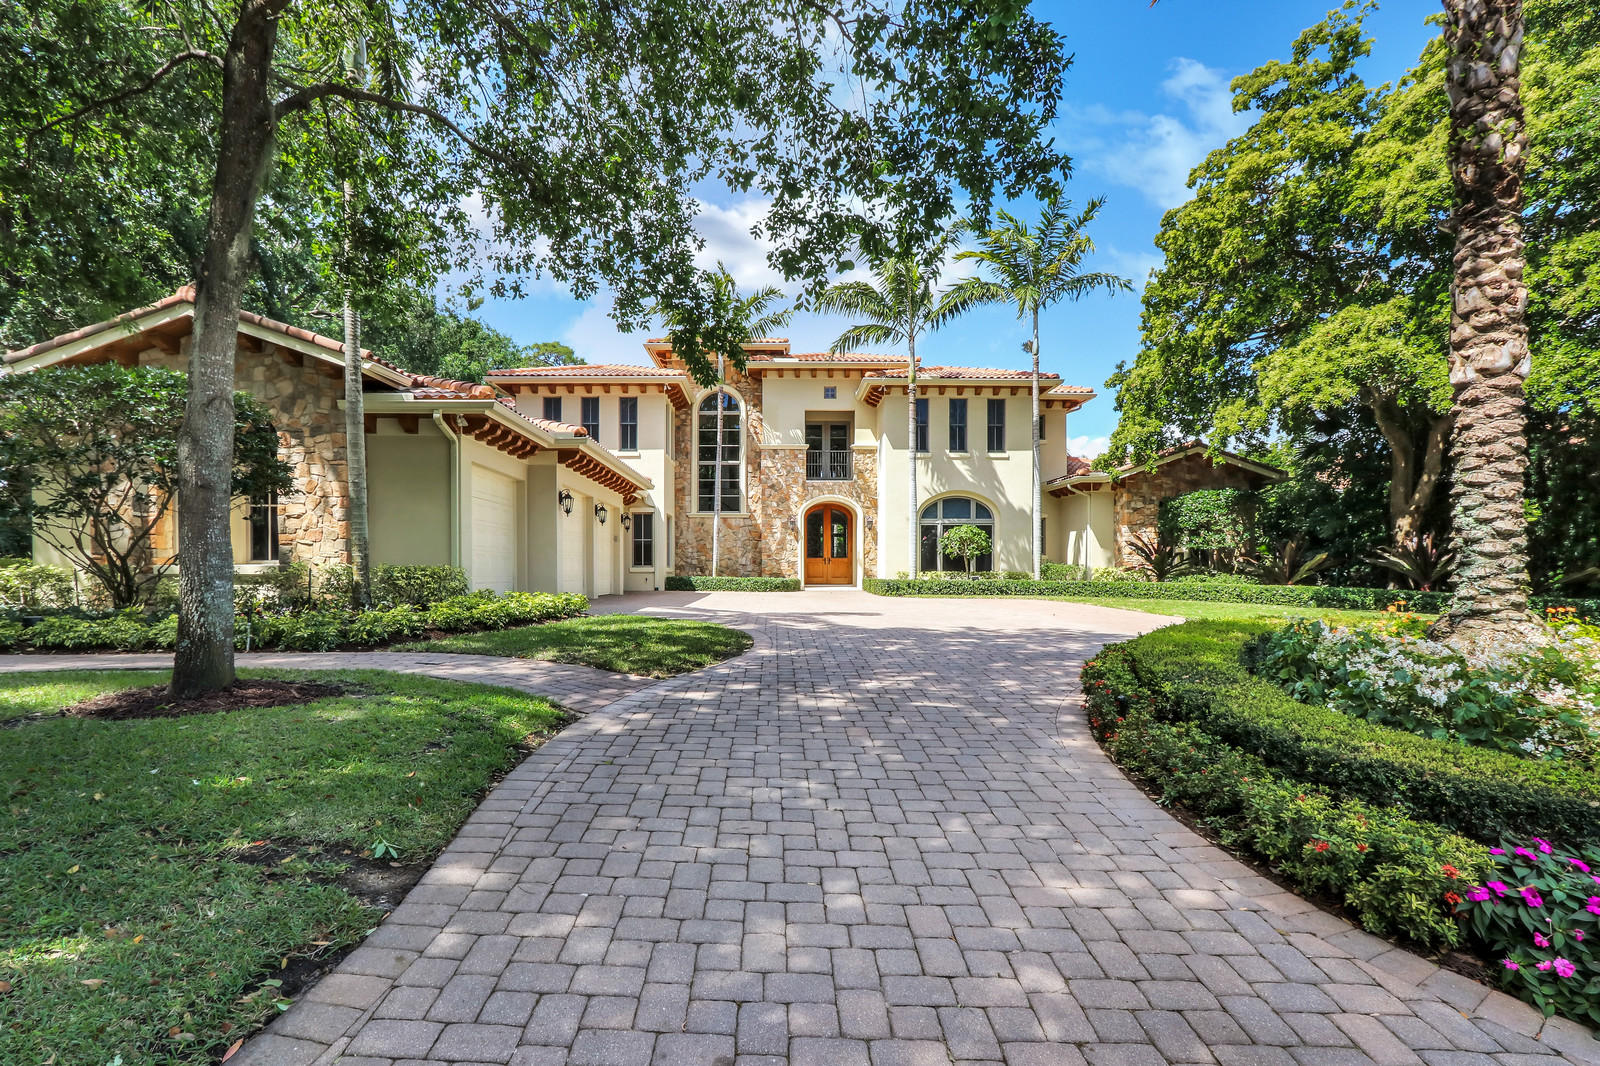 3200 Monet Drive, Palm Beach Gardens, Florida 33410, 5 Bedrooms Bedrooms, ,7.1 BathroomsBathrooms,A,Single family,Monet,RX-10418147